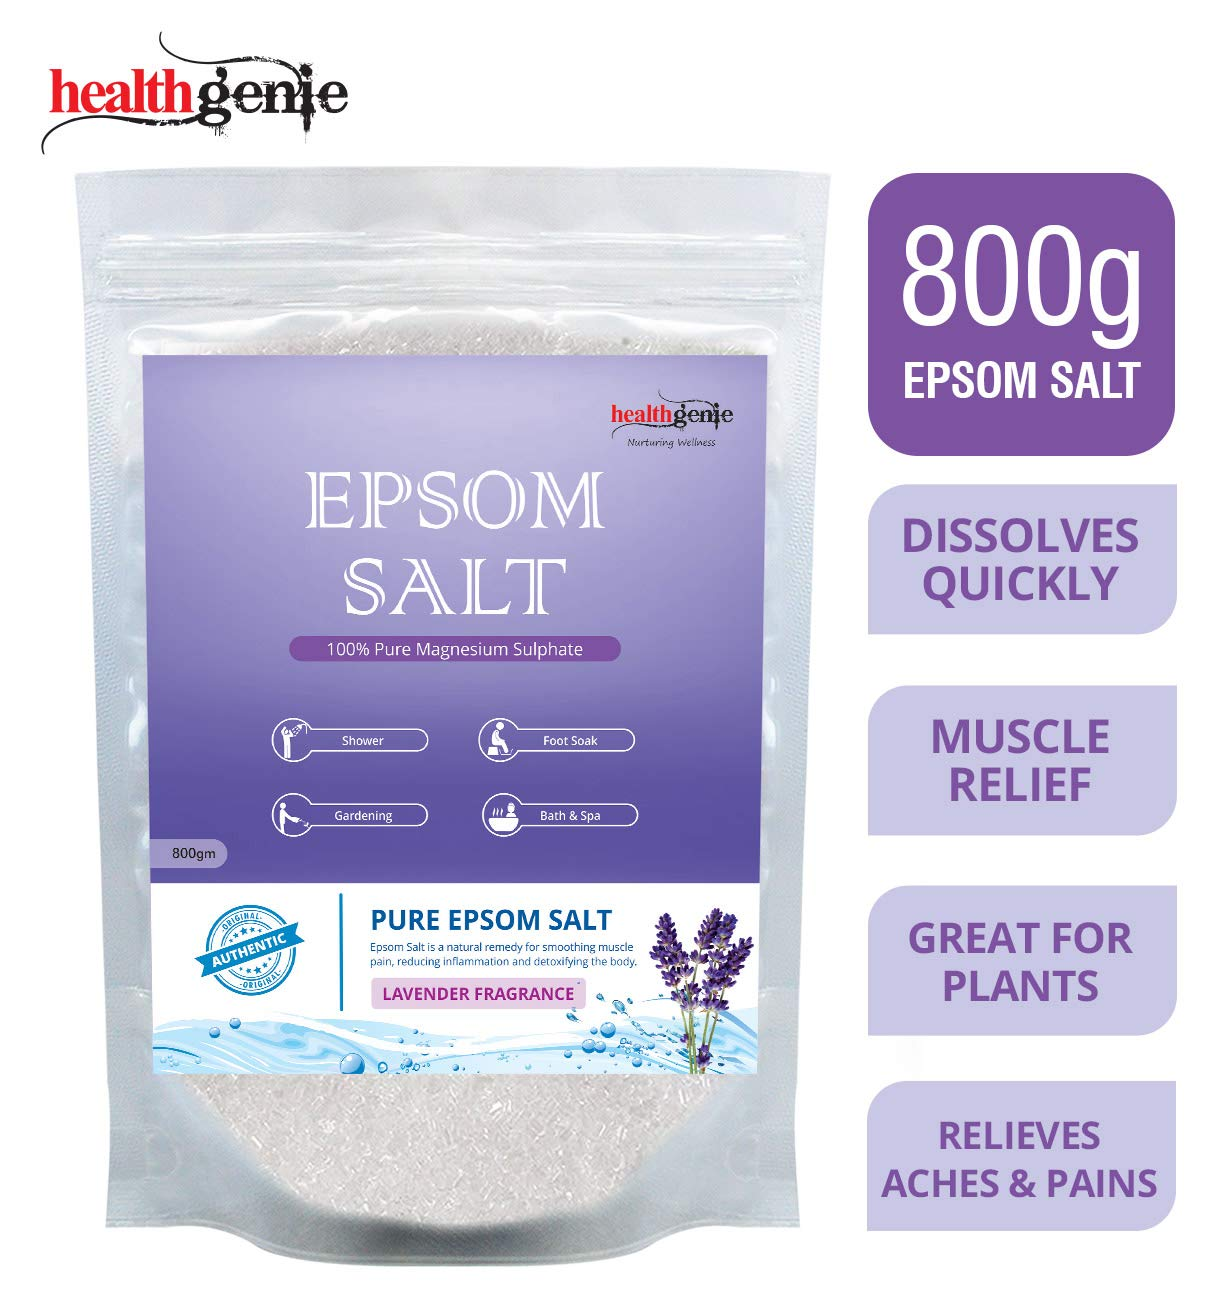 Healthgenie Epsom Salt for Relaxation and Pain Relief with Lavender Fragrance - 800 g